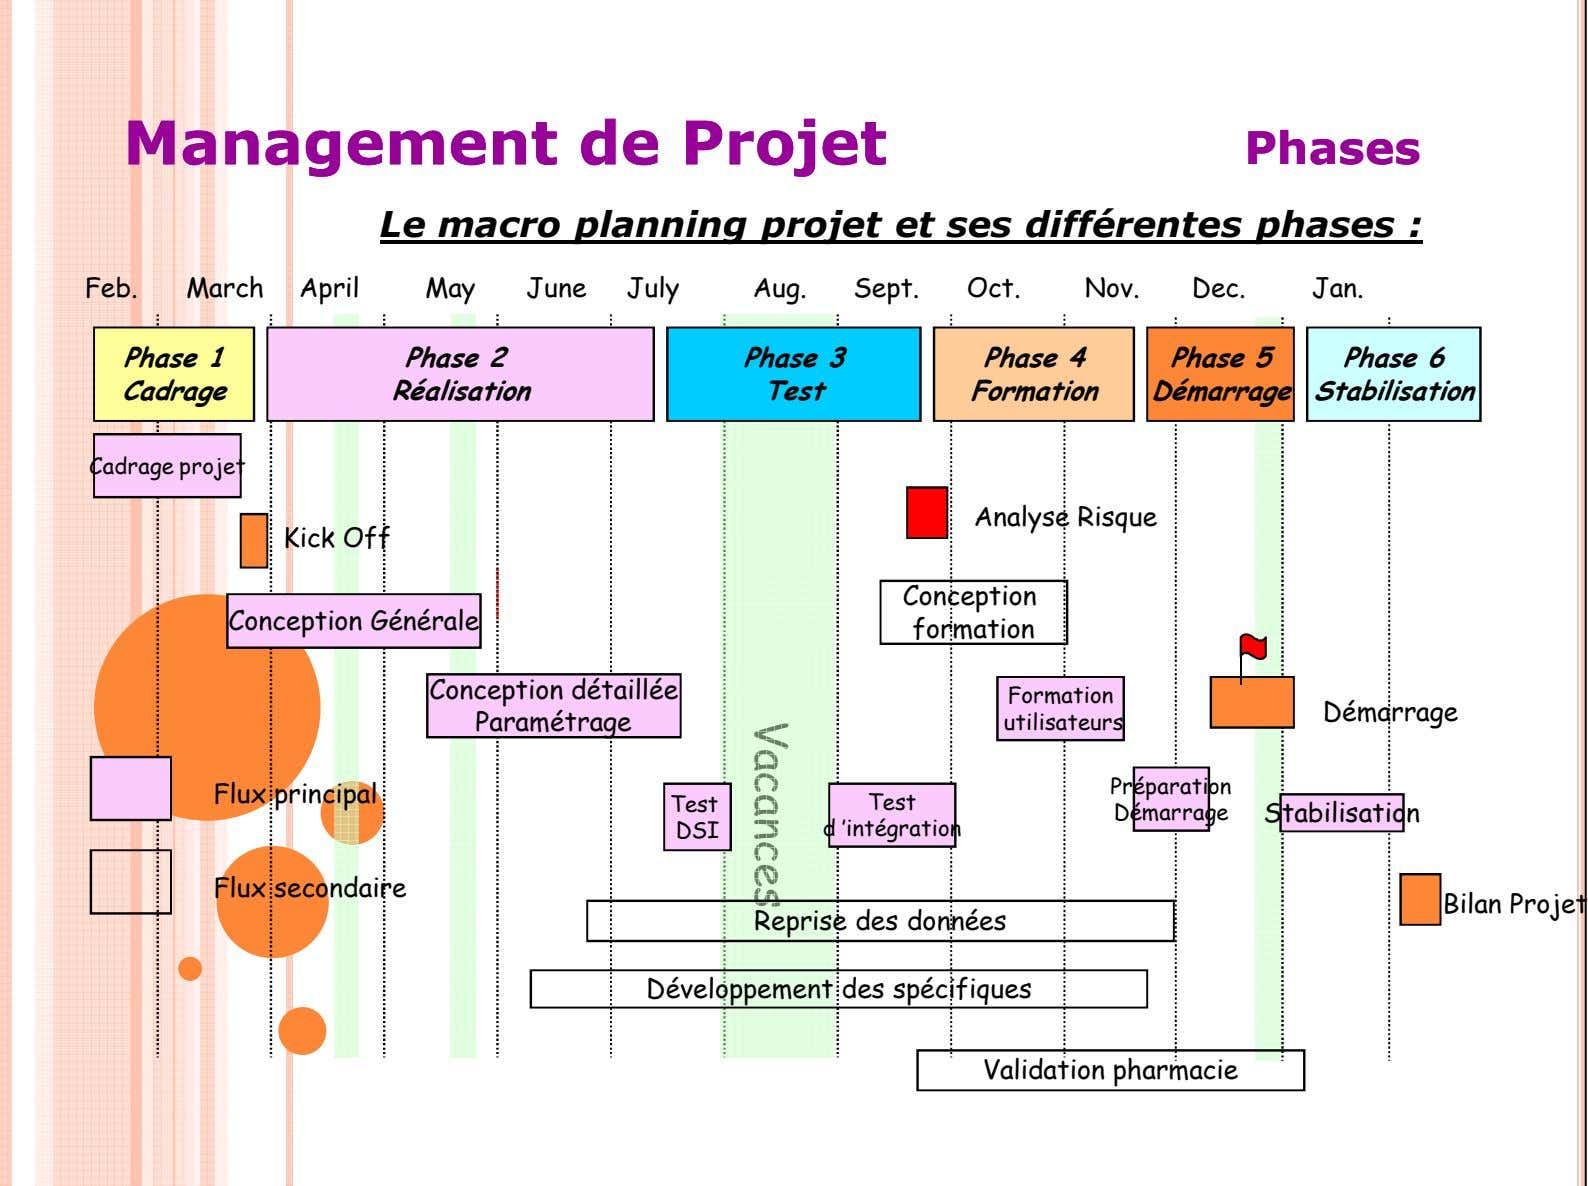 ManagementManagement dede ProjetProjet PhasesPhases Le macro planning projet et ses différentes phases : Feb. March